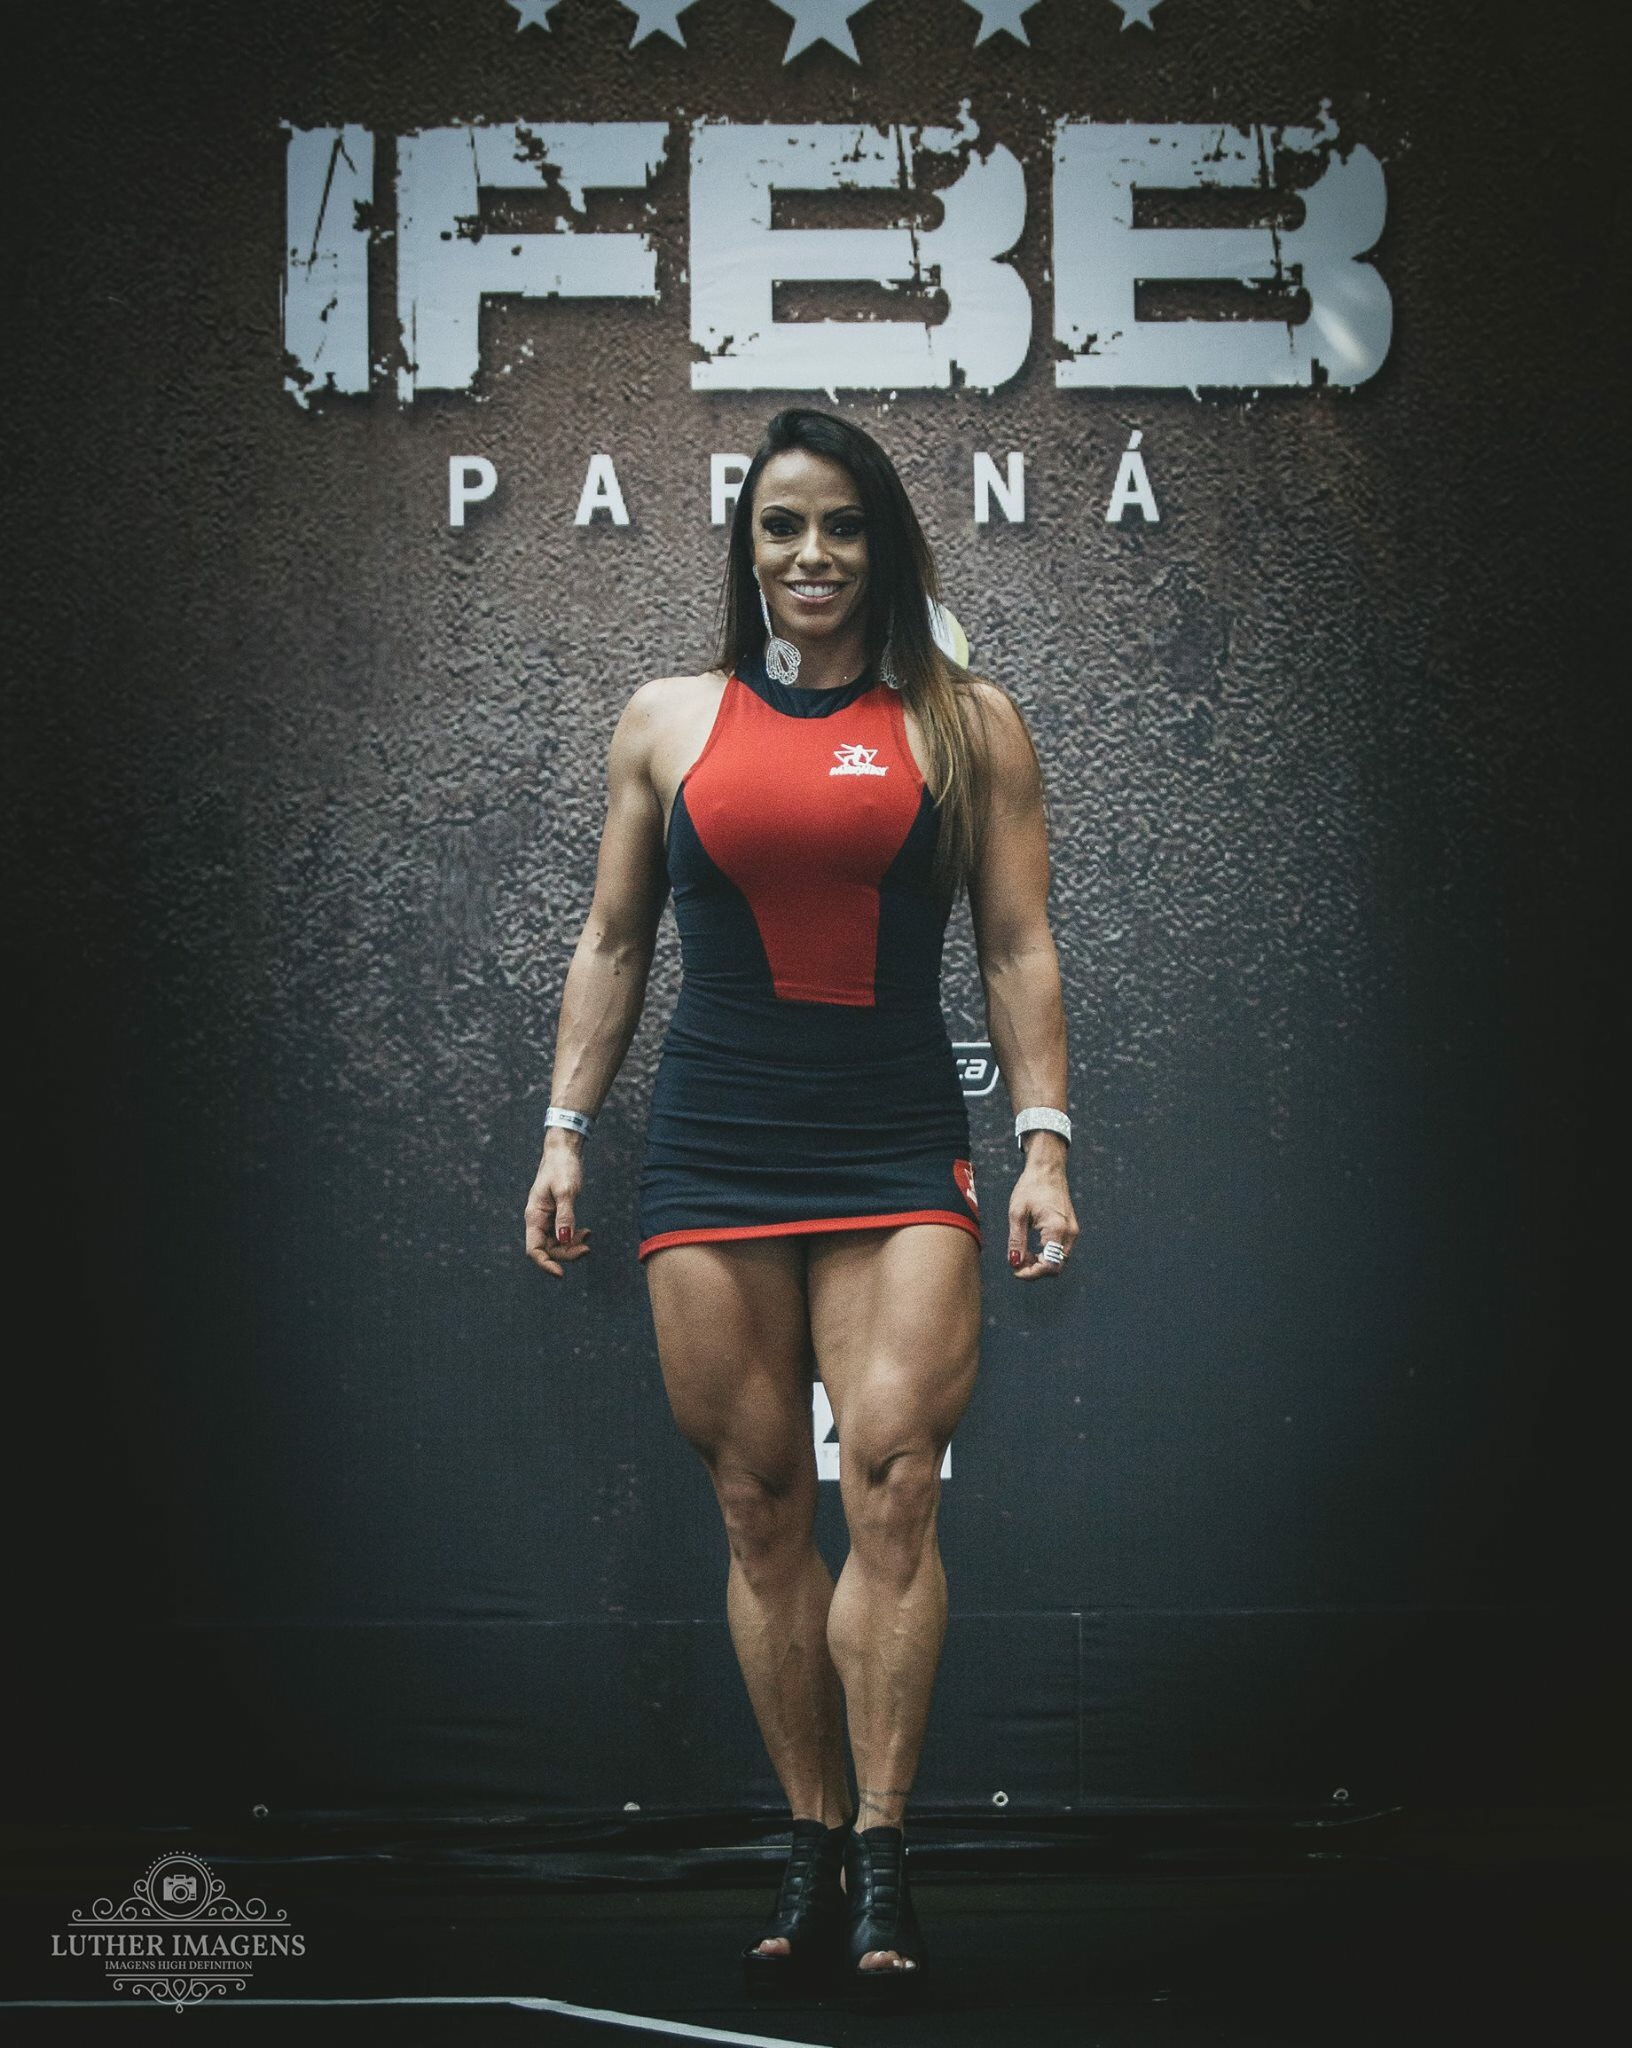 Dani Tayla at the IFBB Paraná